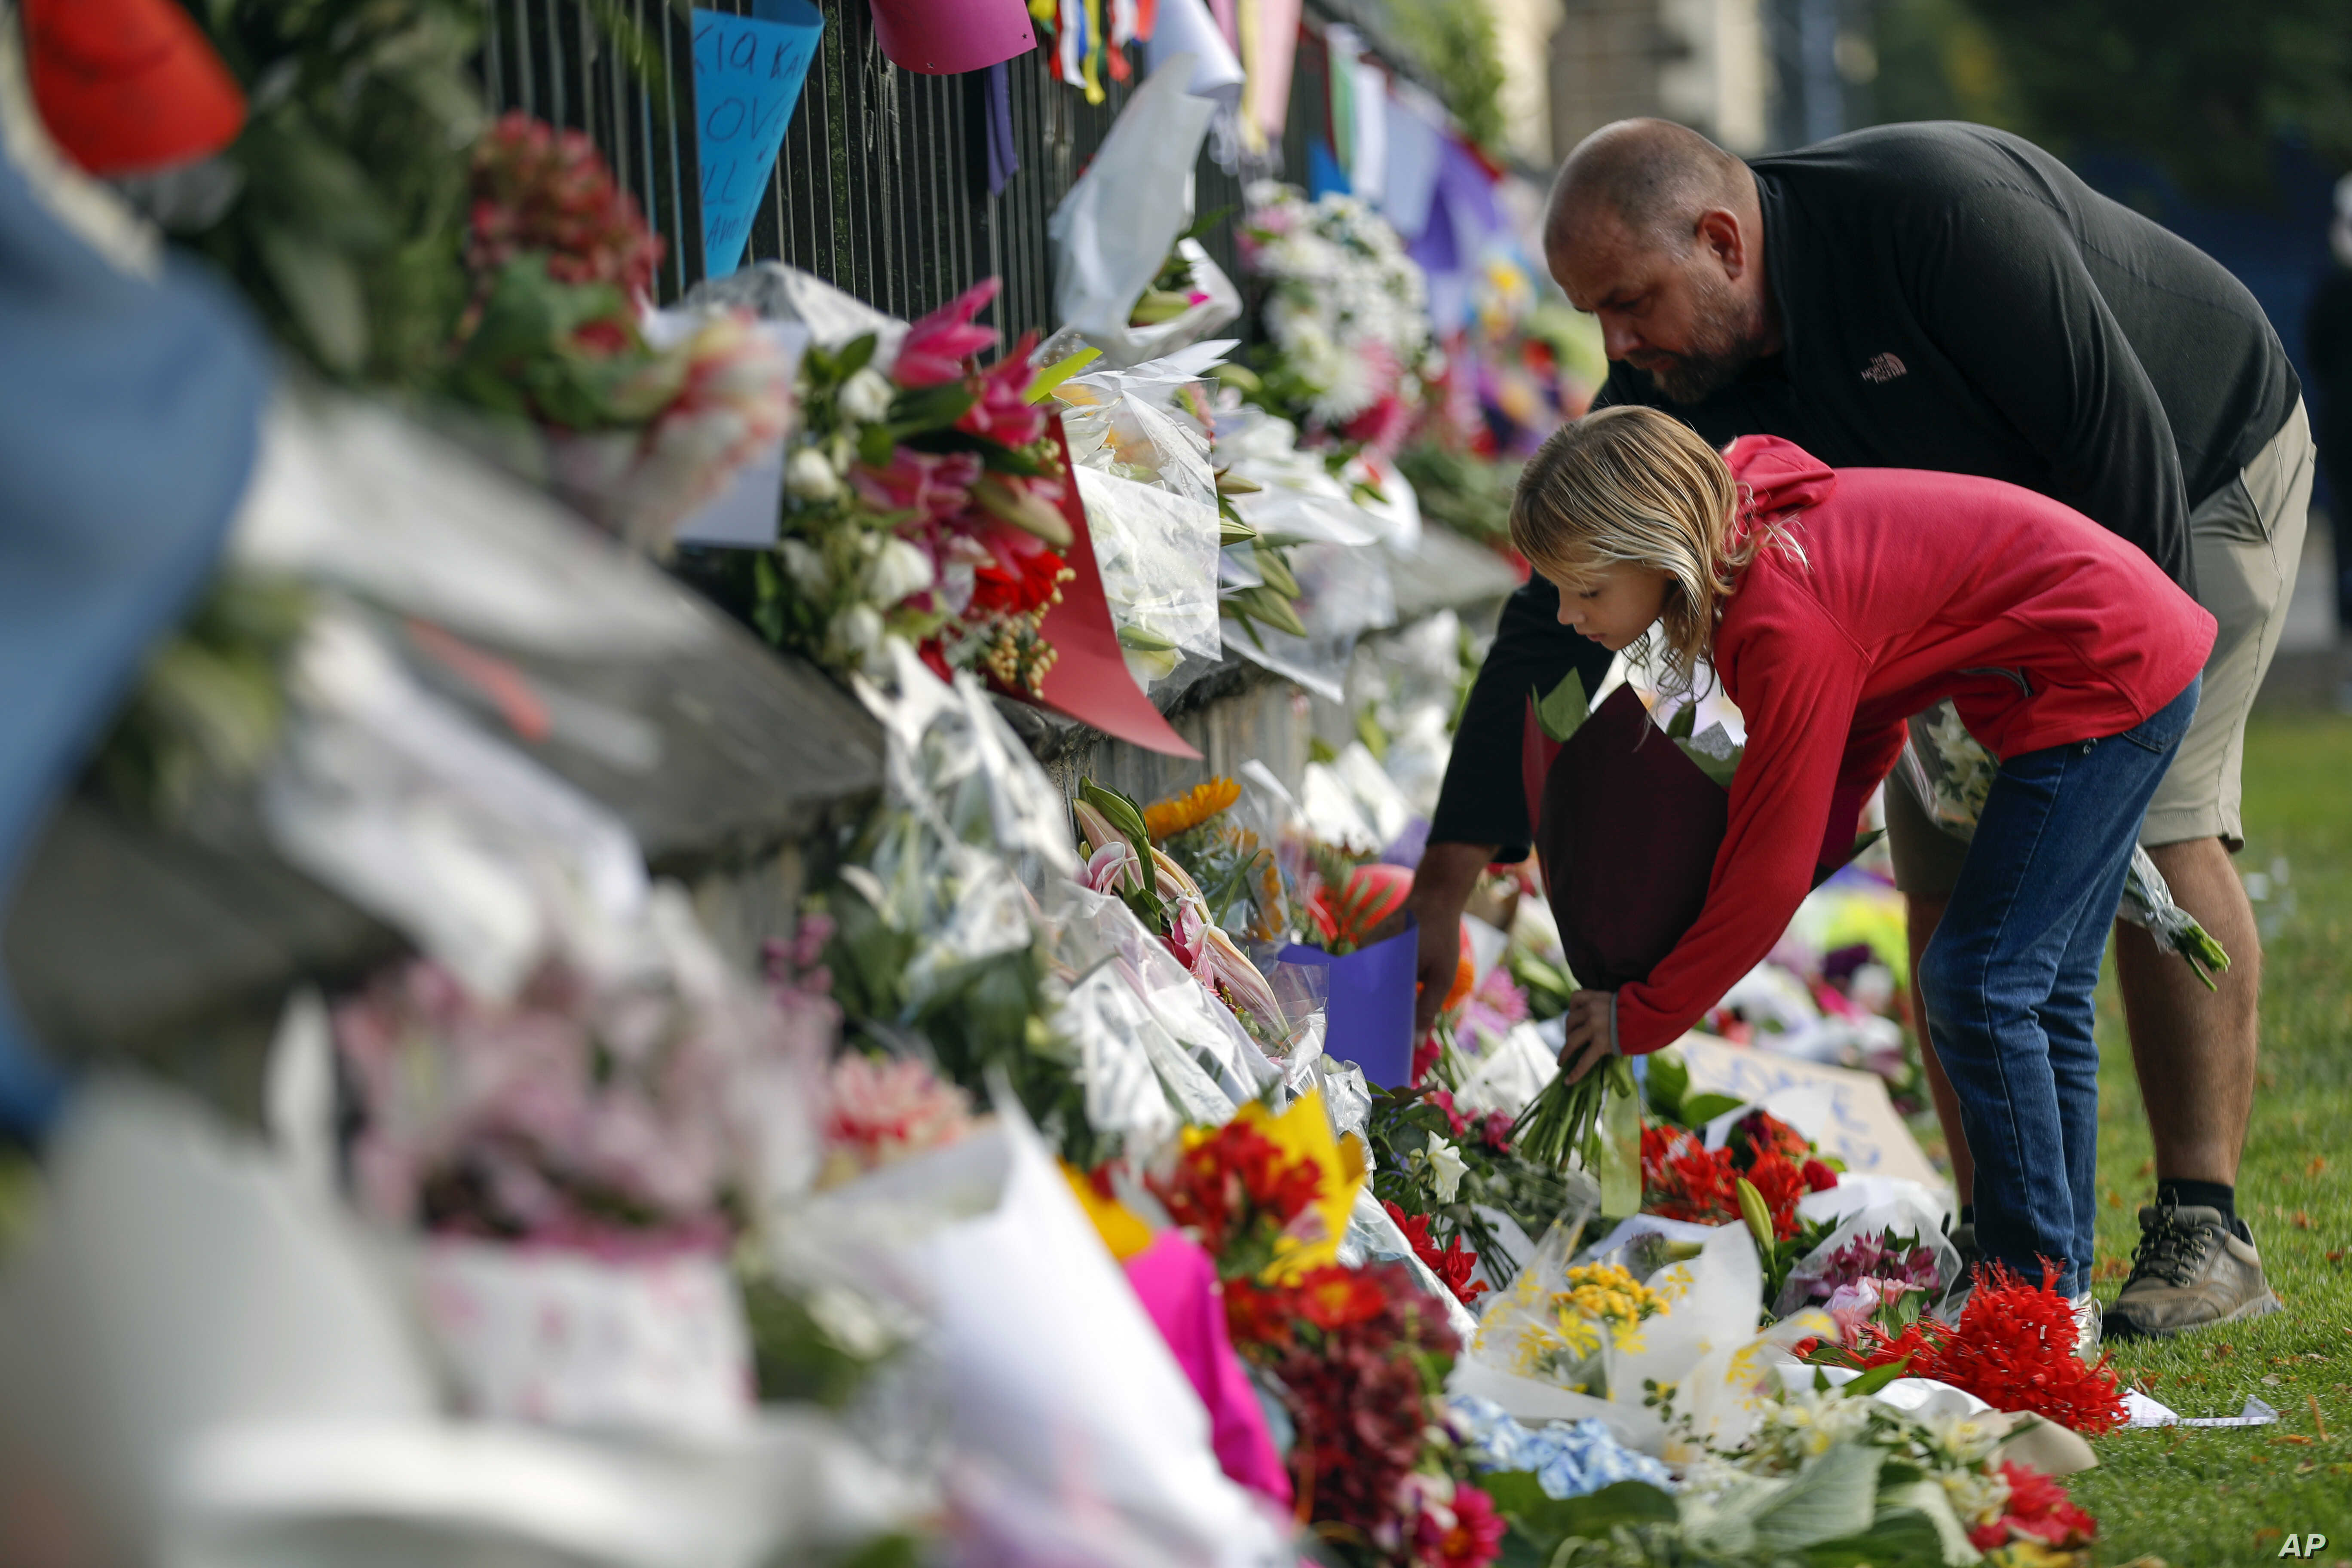 Mourners lay flowers on a wall at the Botanical Gardens in Christchurch, New Zealand, March 16, 2019. New Zealand's stricken residents reached out to Muslims in their neighborhoods and around the country Saturday, in a fierce determination to show ki